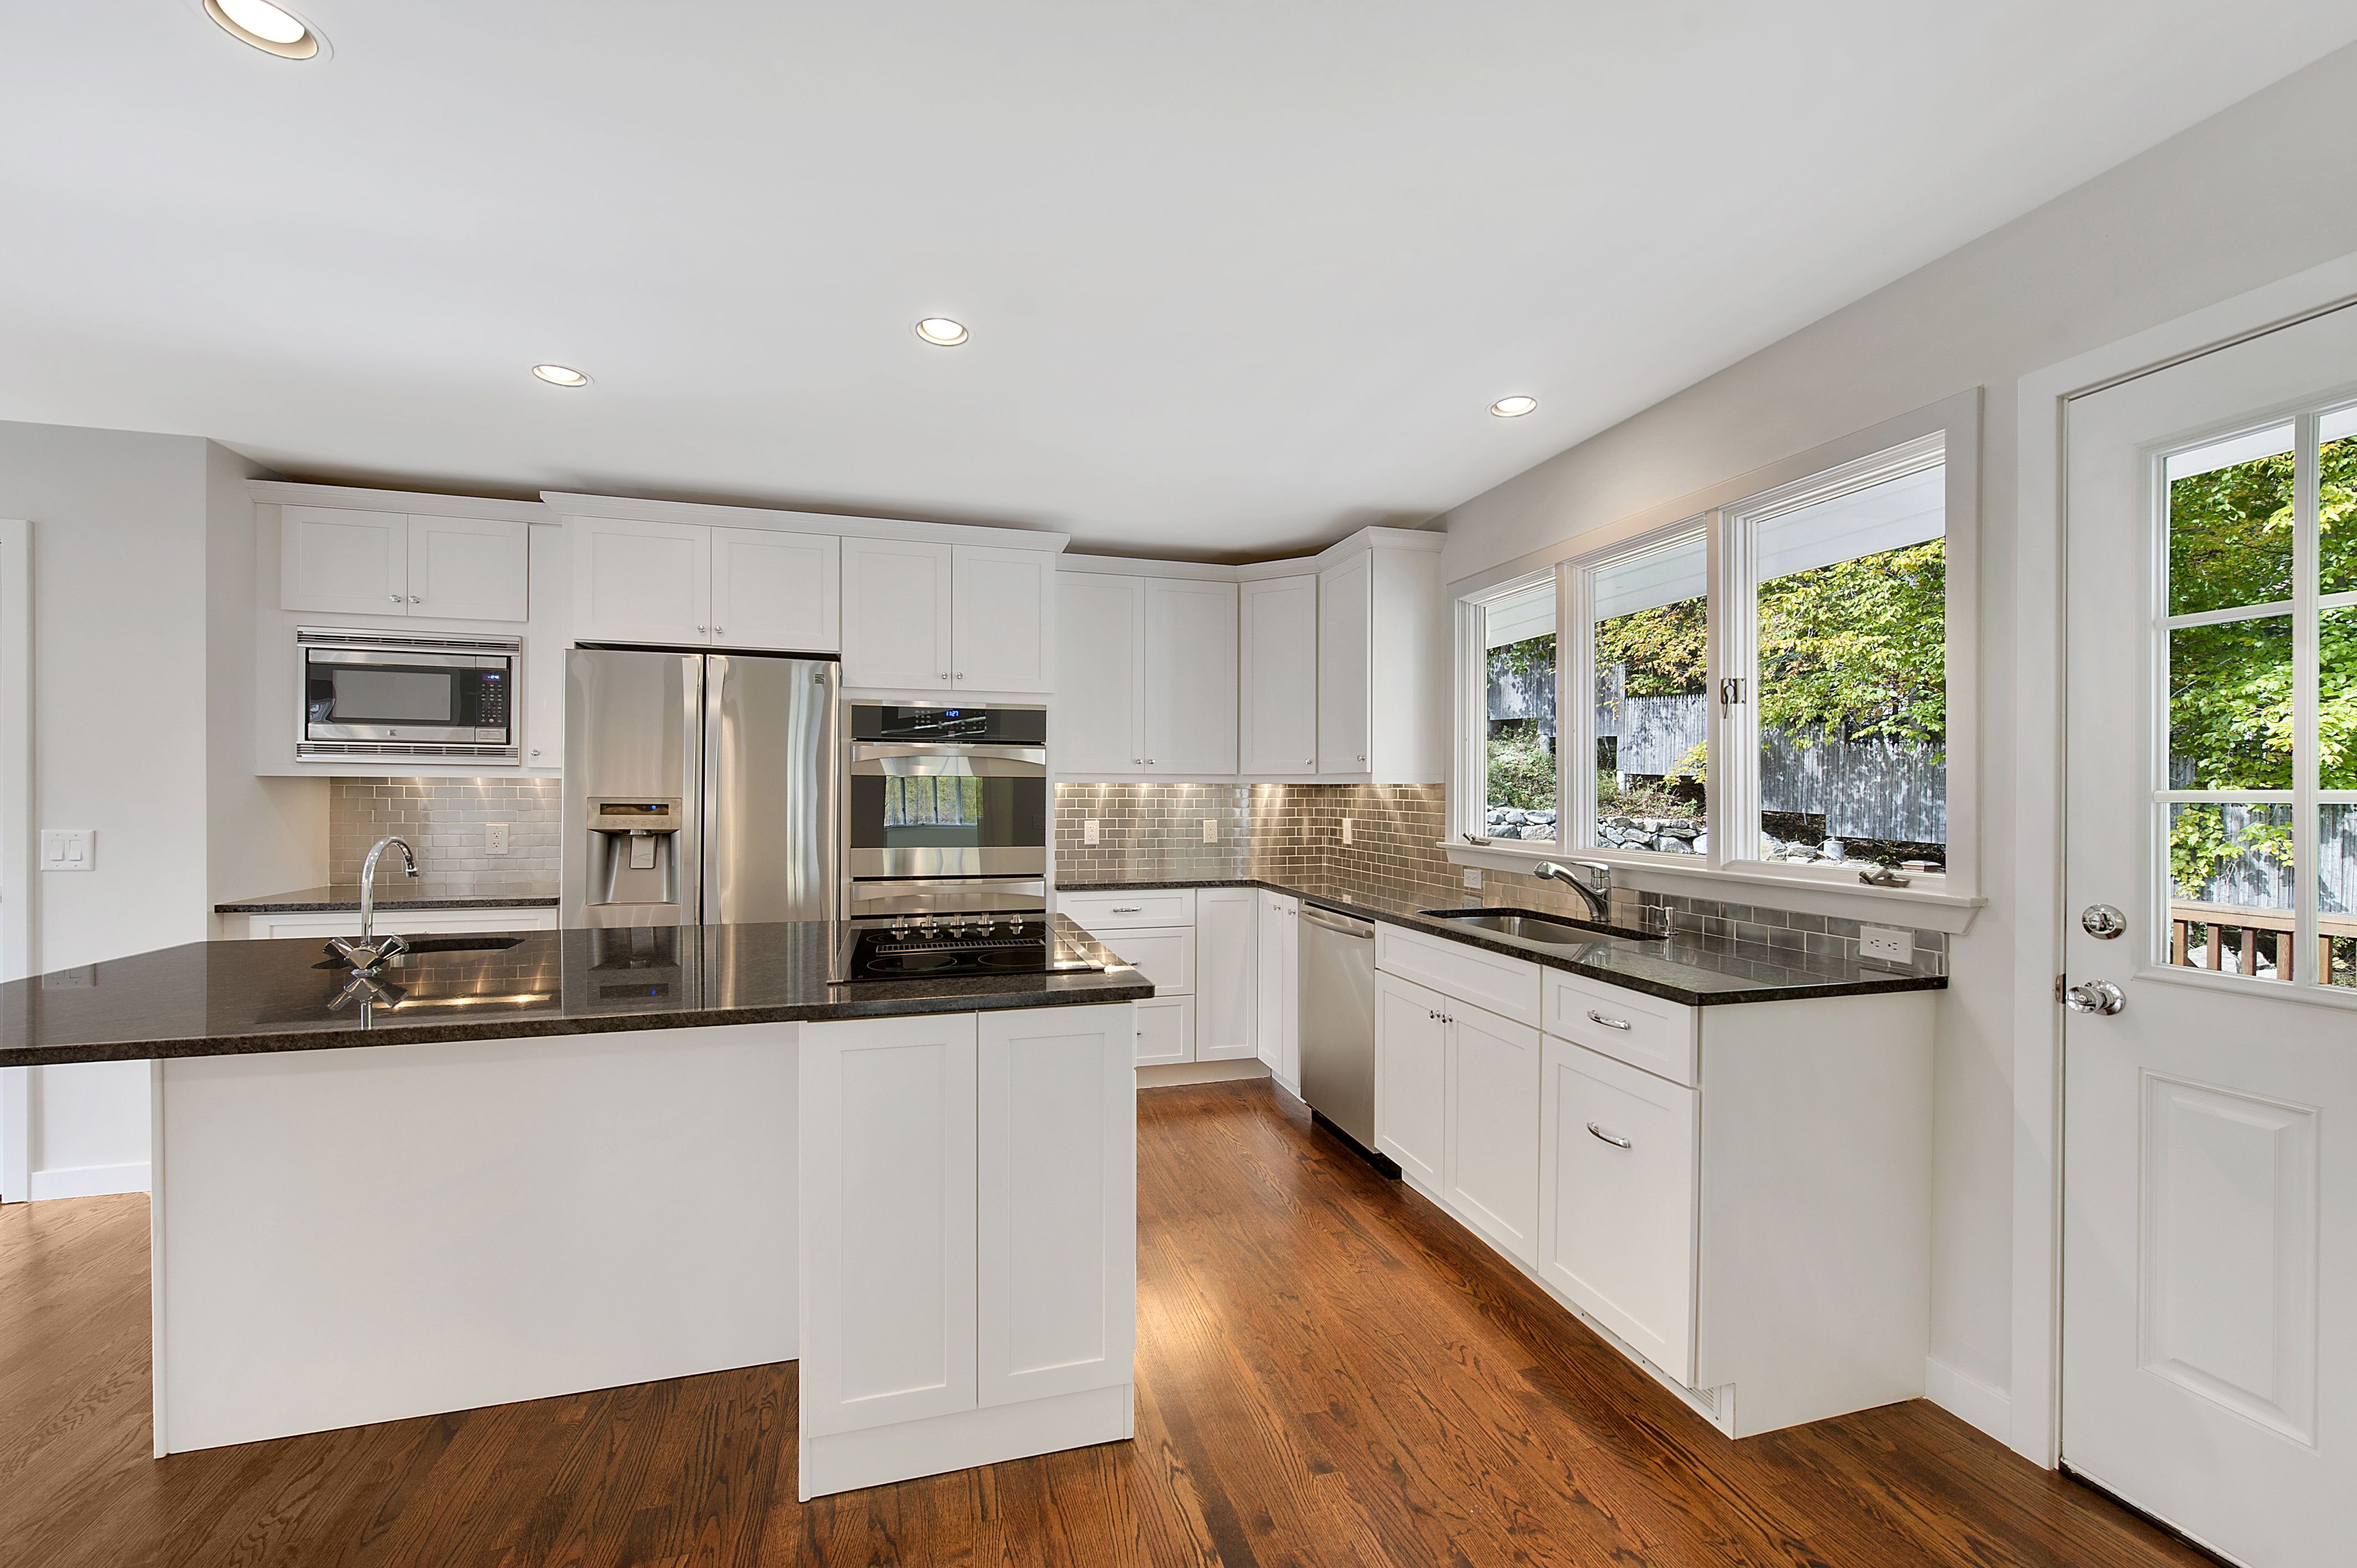 frightening fantastic kitchens redo cabinets quality pattern high remodel of kitchen end ideas pictures luxury on refacing scott oak lovely awesome pretty incredible remodeling cabinet